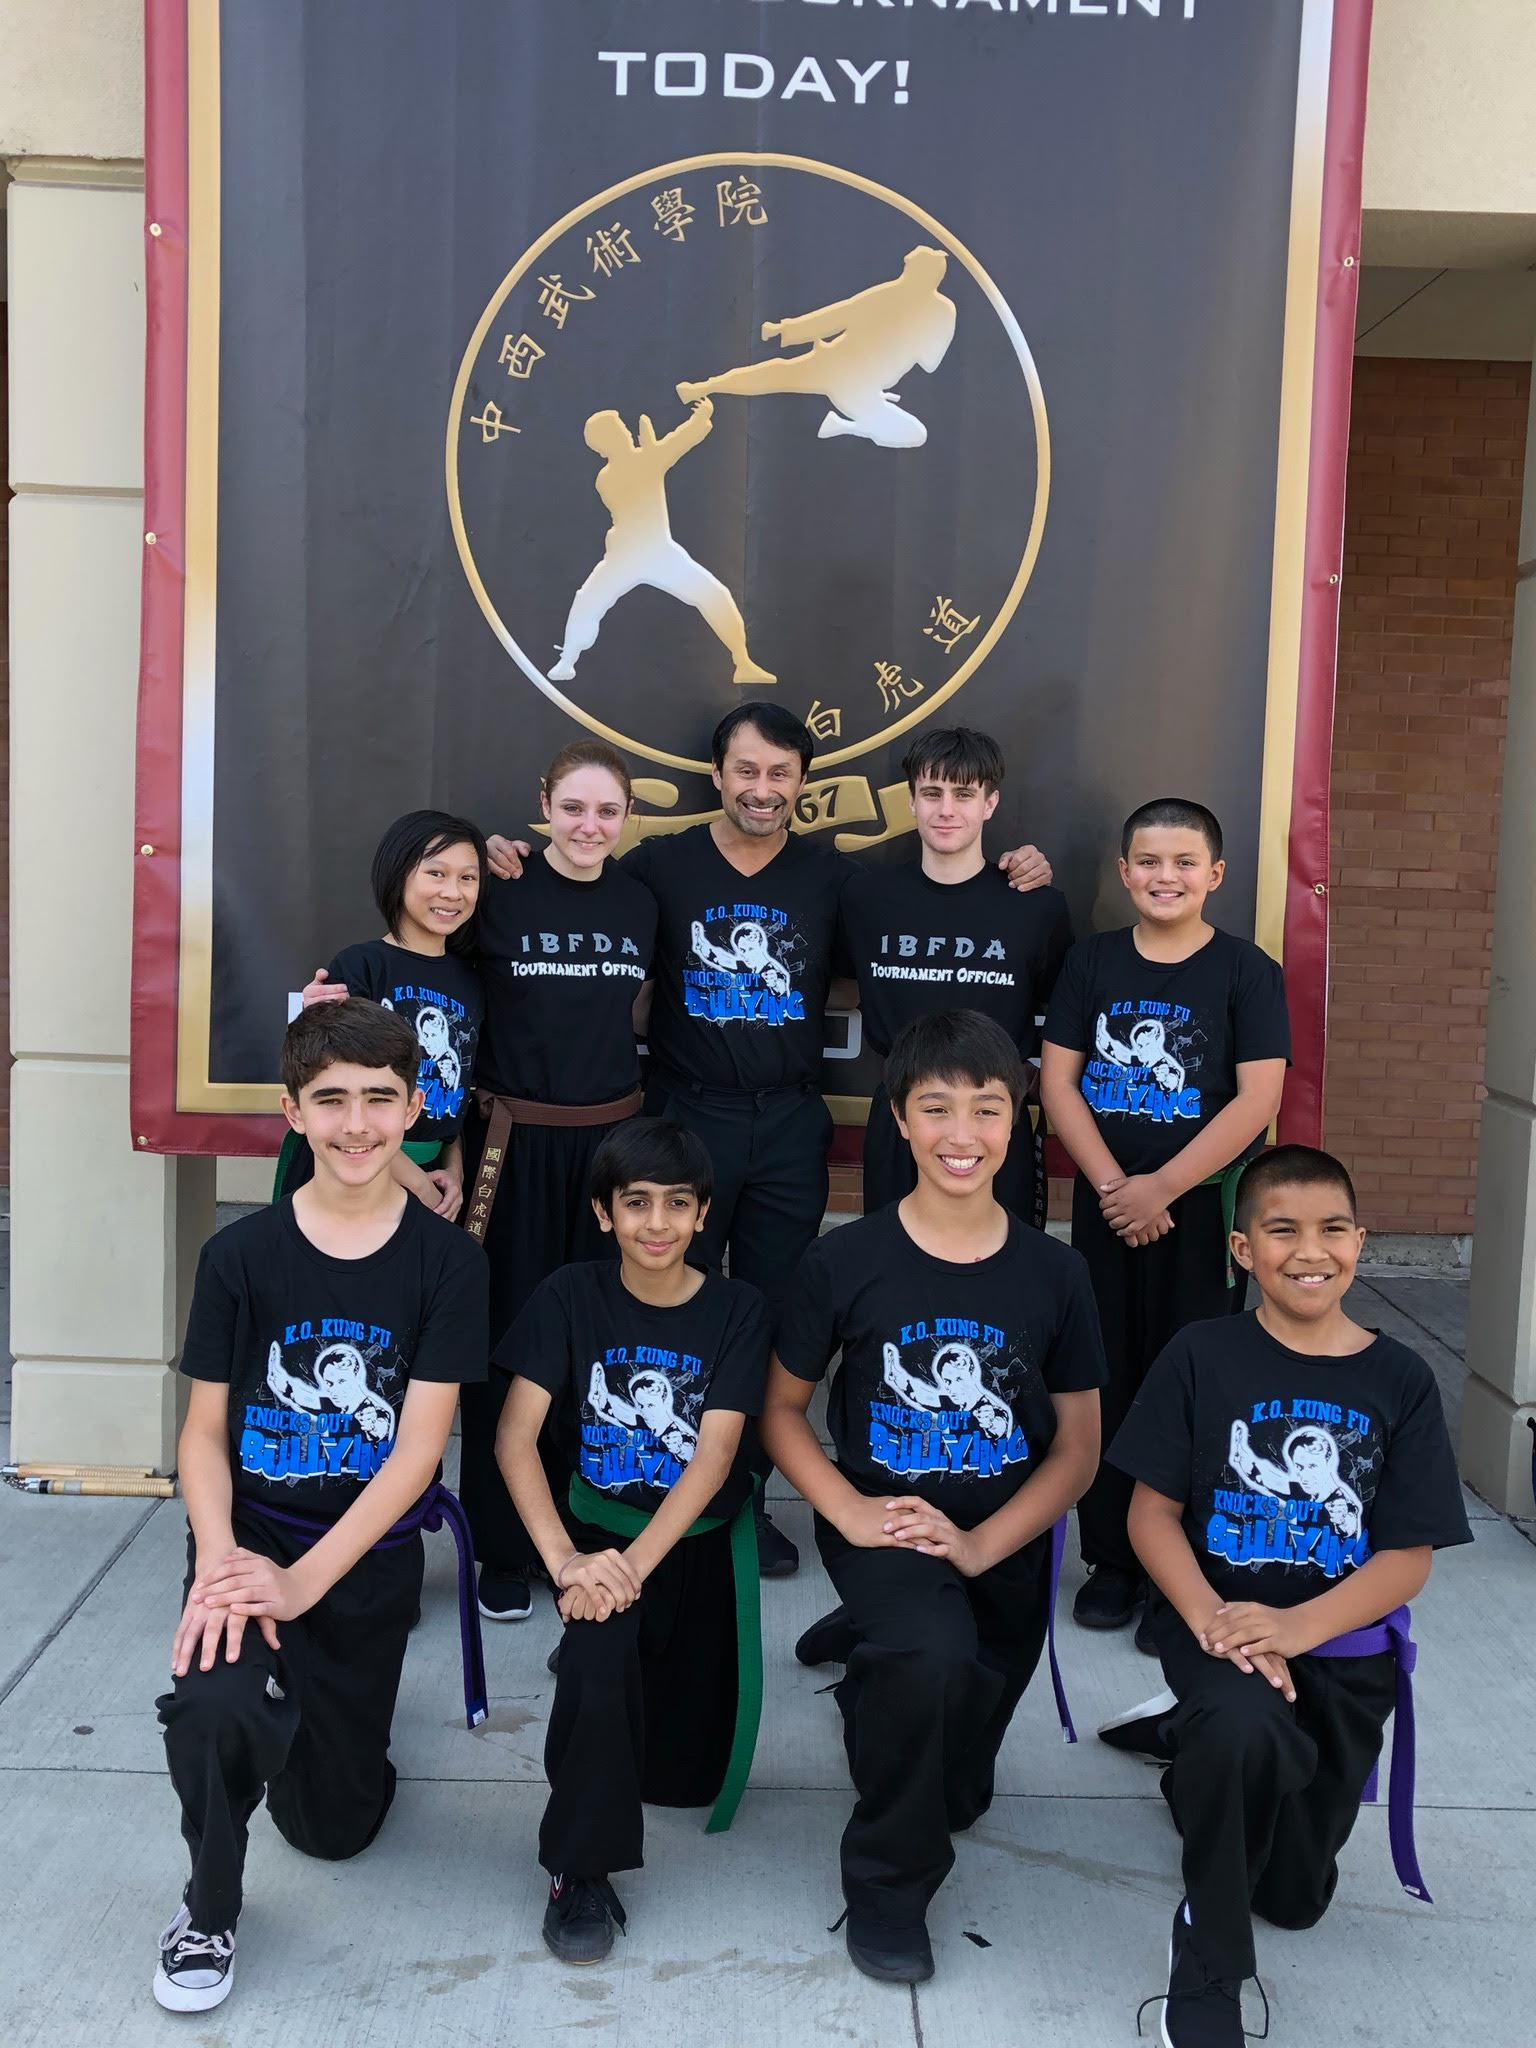 Arav Anand with his Teachers and teammates at the IBFDA Spring Tournament, 2018